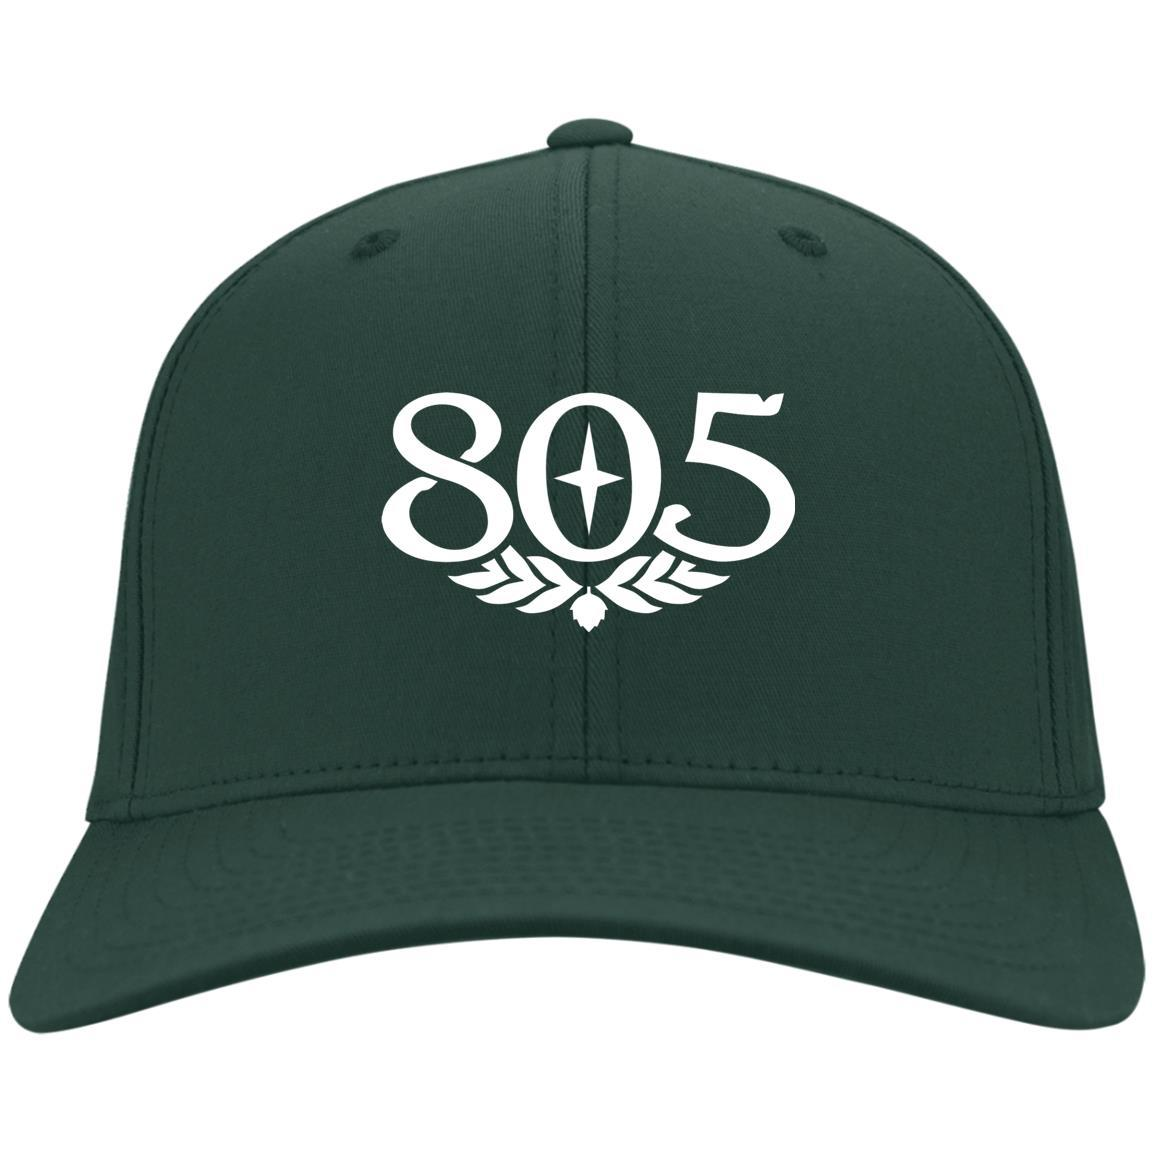 805 Beer - Port & Co. Twill Cap Hunter Green